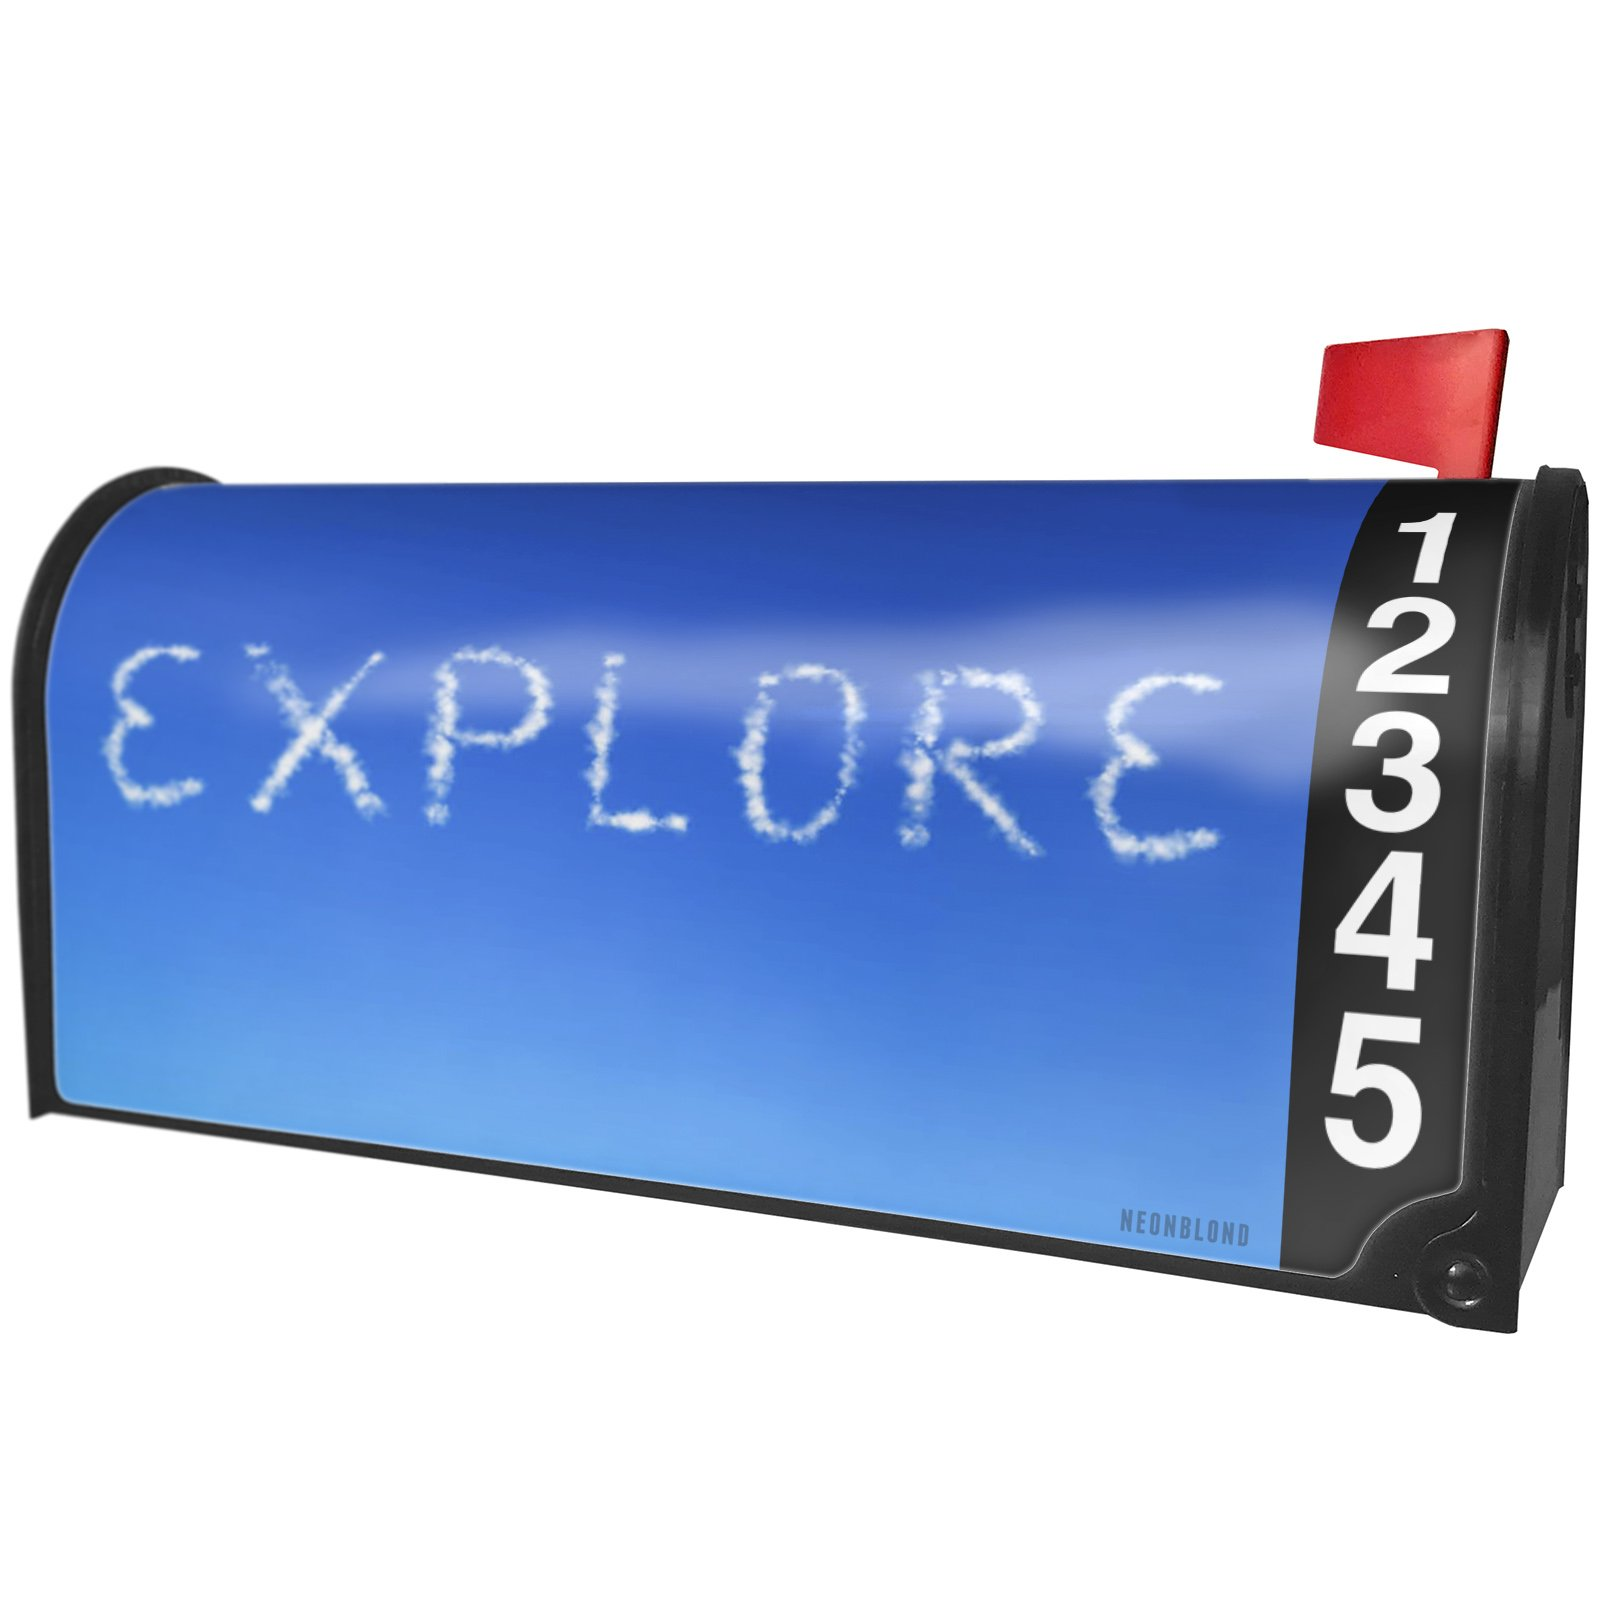 NEONBLOND Explore Clouds Fresh Air Magnetic Mailbox Cover Custom Numbers